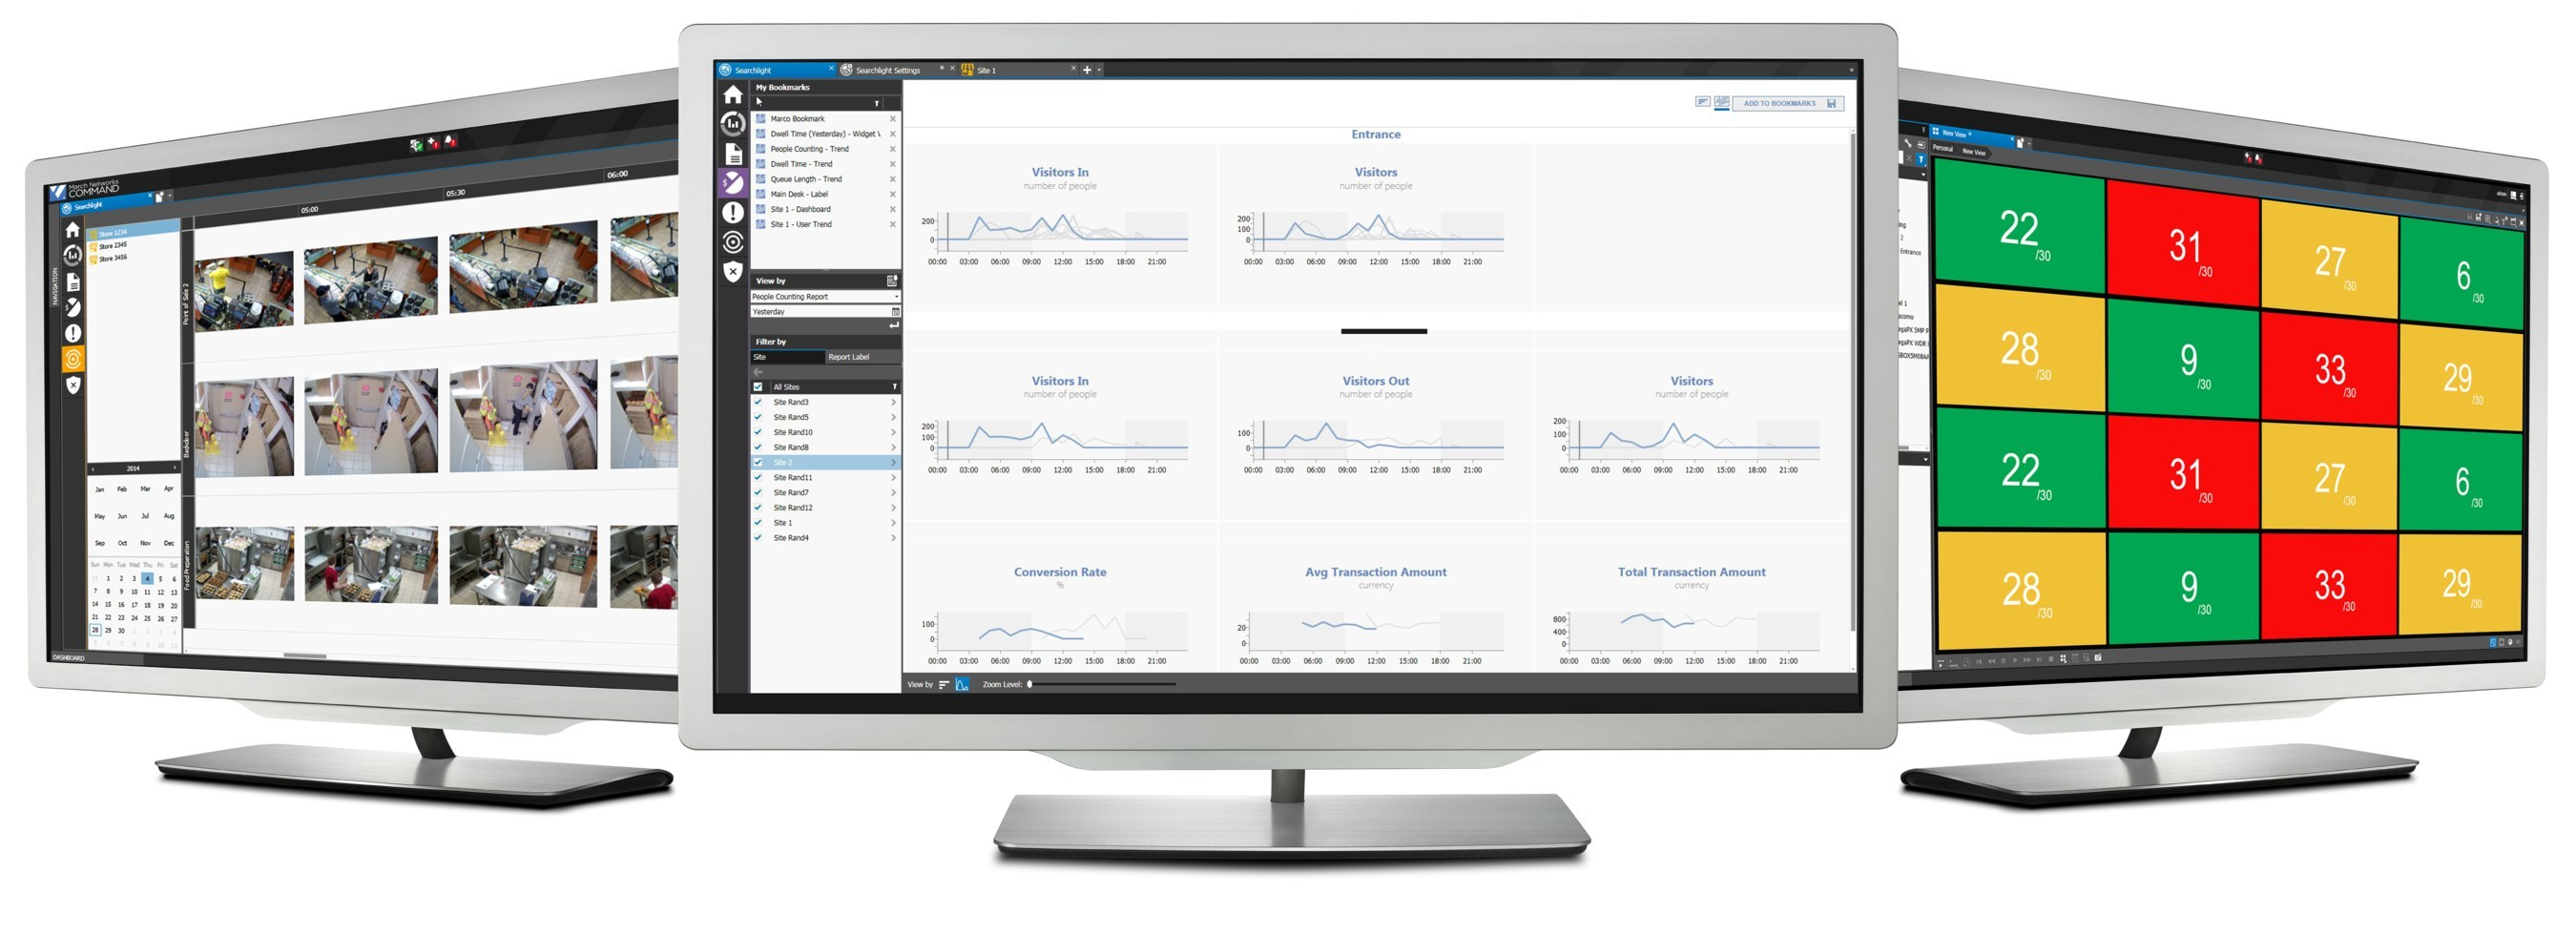 The March Networks Health Compliance Solution features real-time alerts on building occupancy and elevated body temperatures, as well as video audits of health & safety procedures.